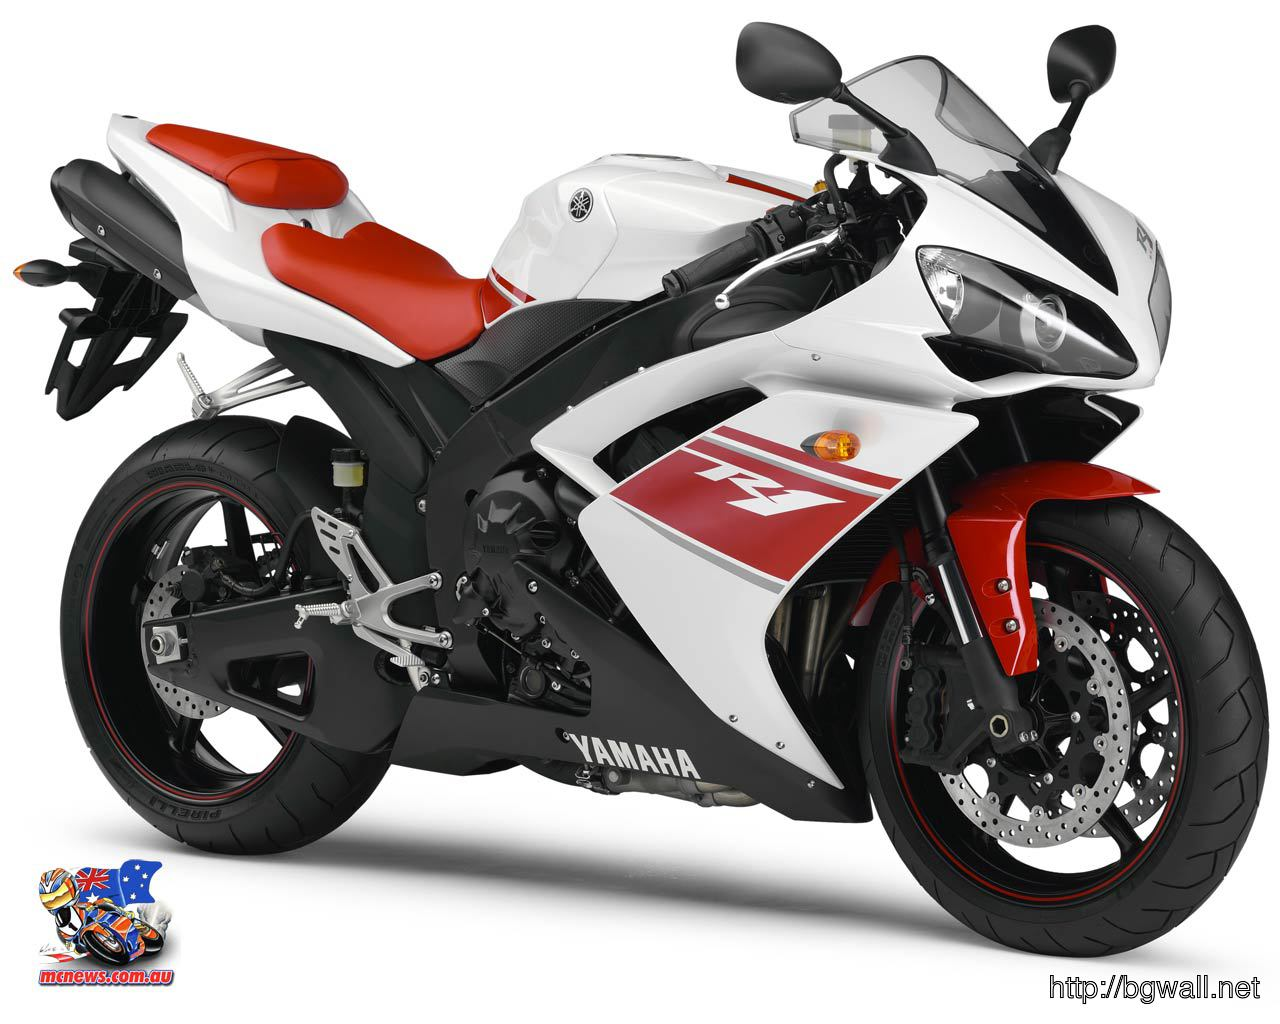 yamaha r1 red 2012 hd wallpapers in bikes – background wallpaper hd